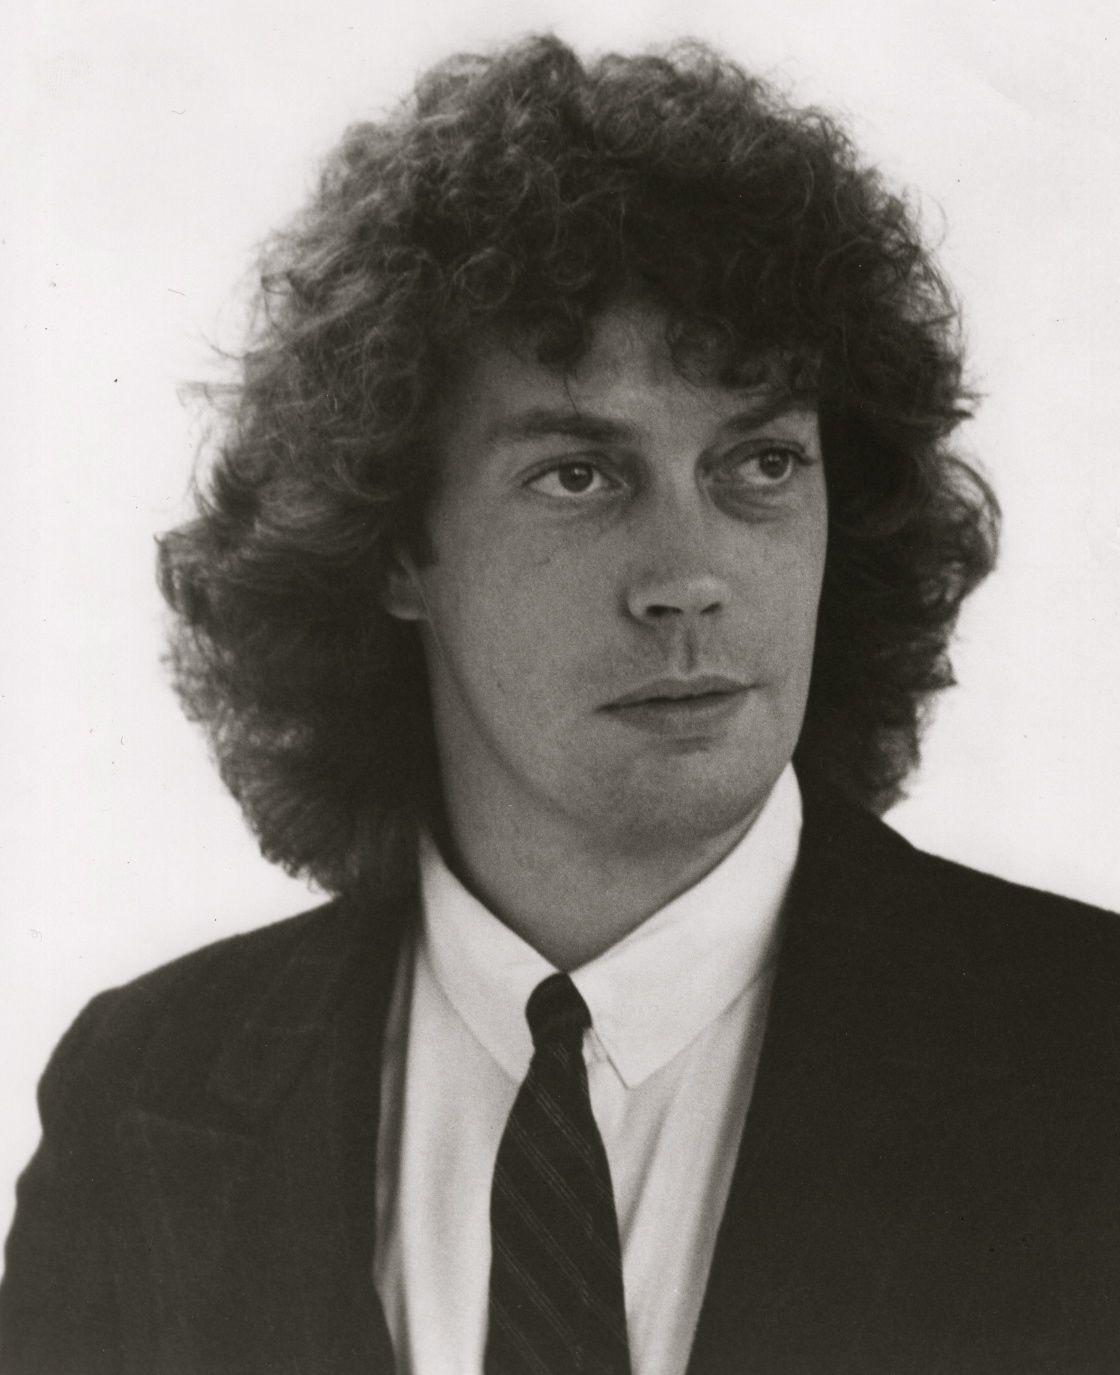 tim curry discogstim curry it, tim curry 2017, tim curry 2015, tim curry toxic love, tim curry rocky horror, tim curry criminal minds, tim curry titanic, tim curry interview, tim curry audiobook, tim curry voice actor, tim curry imdb, tim curry tumblr, tim curry discogs, tim curry fearless, tim curry x reader, tim curry read my lips, tim curry now, tim curry wiki, tim curry red alert, tim curry dragon age